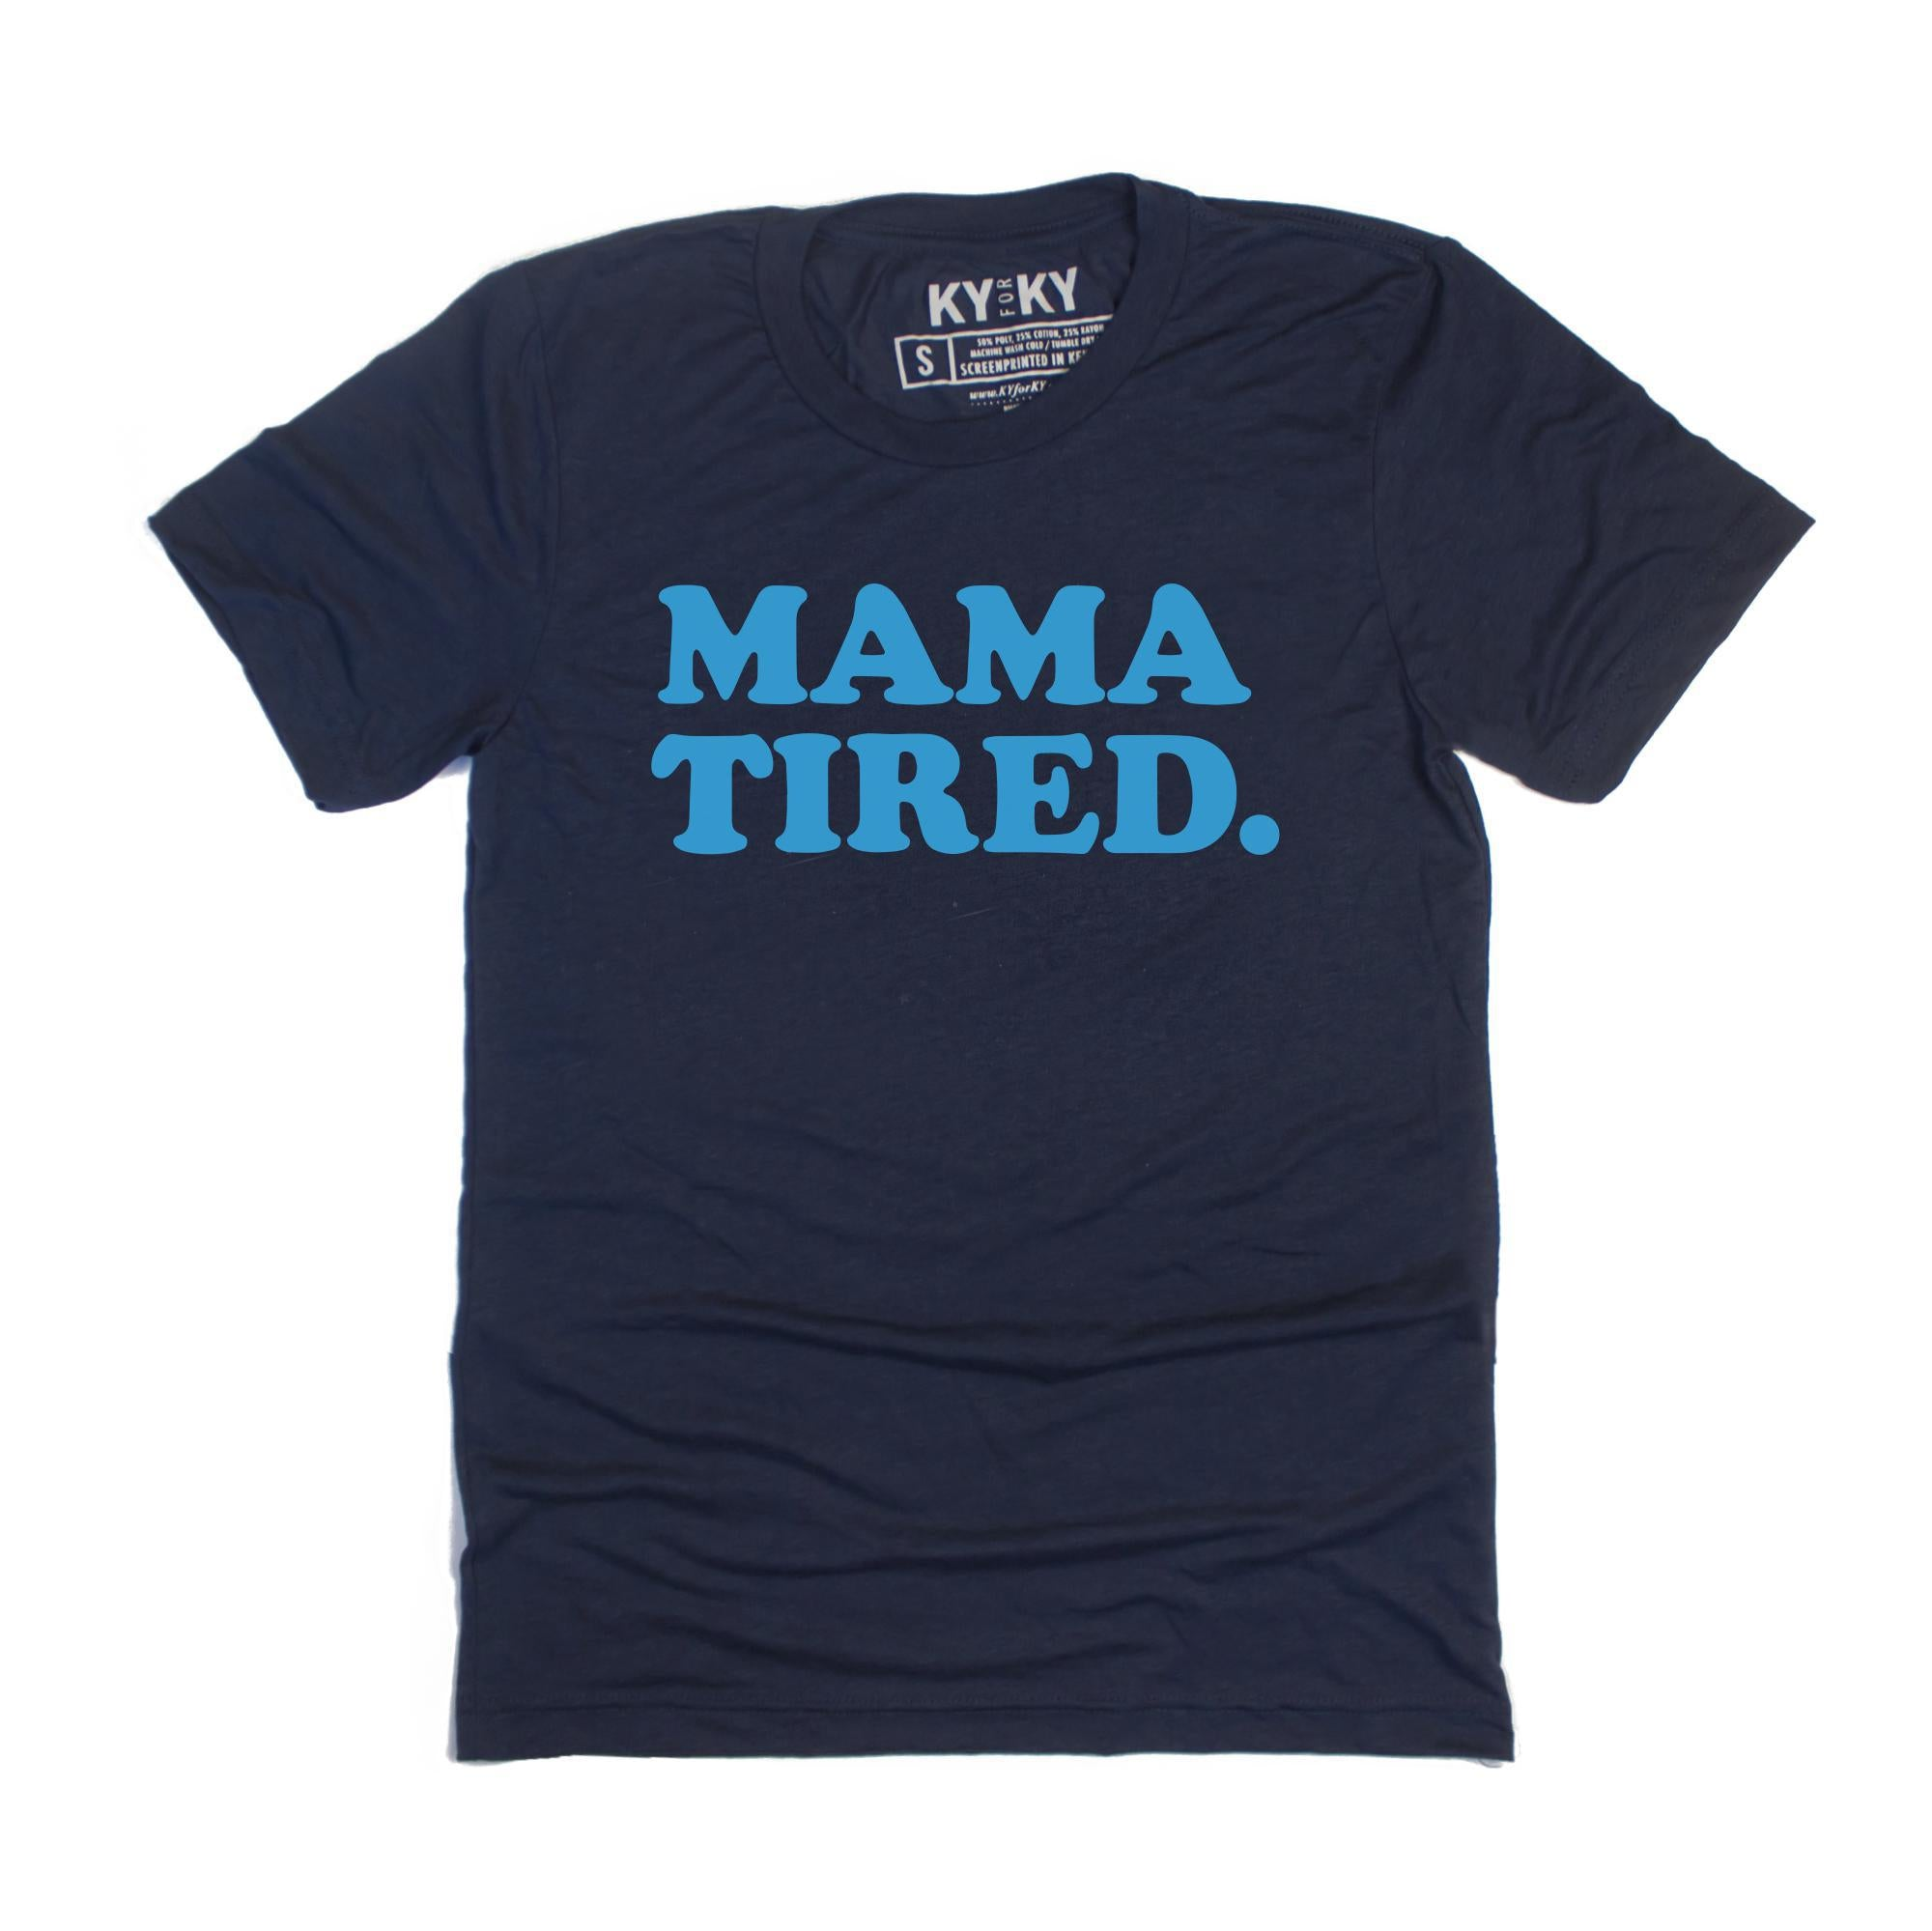 MAMA TIRED. T-Shirt (Navy)-T-Shirt-KY for KY Store